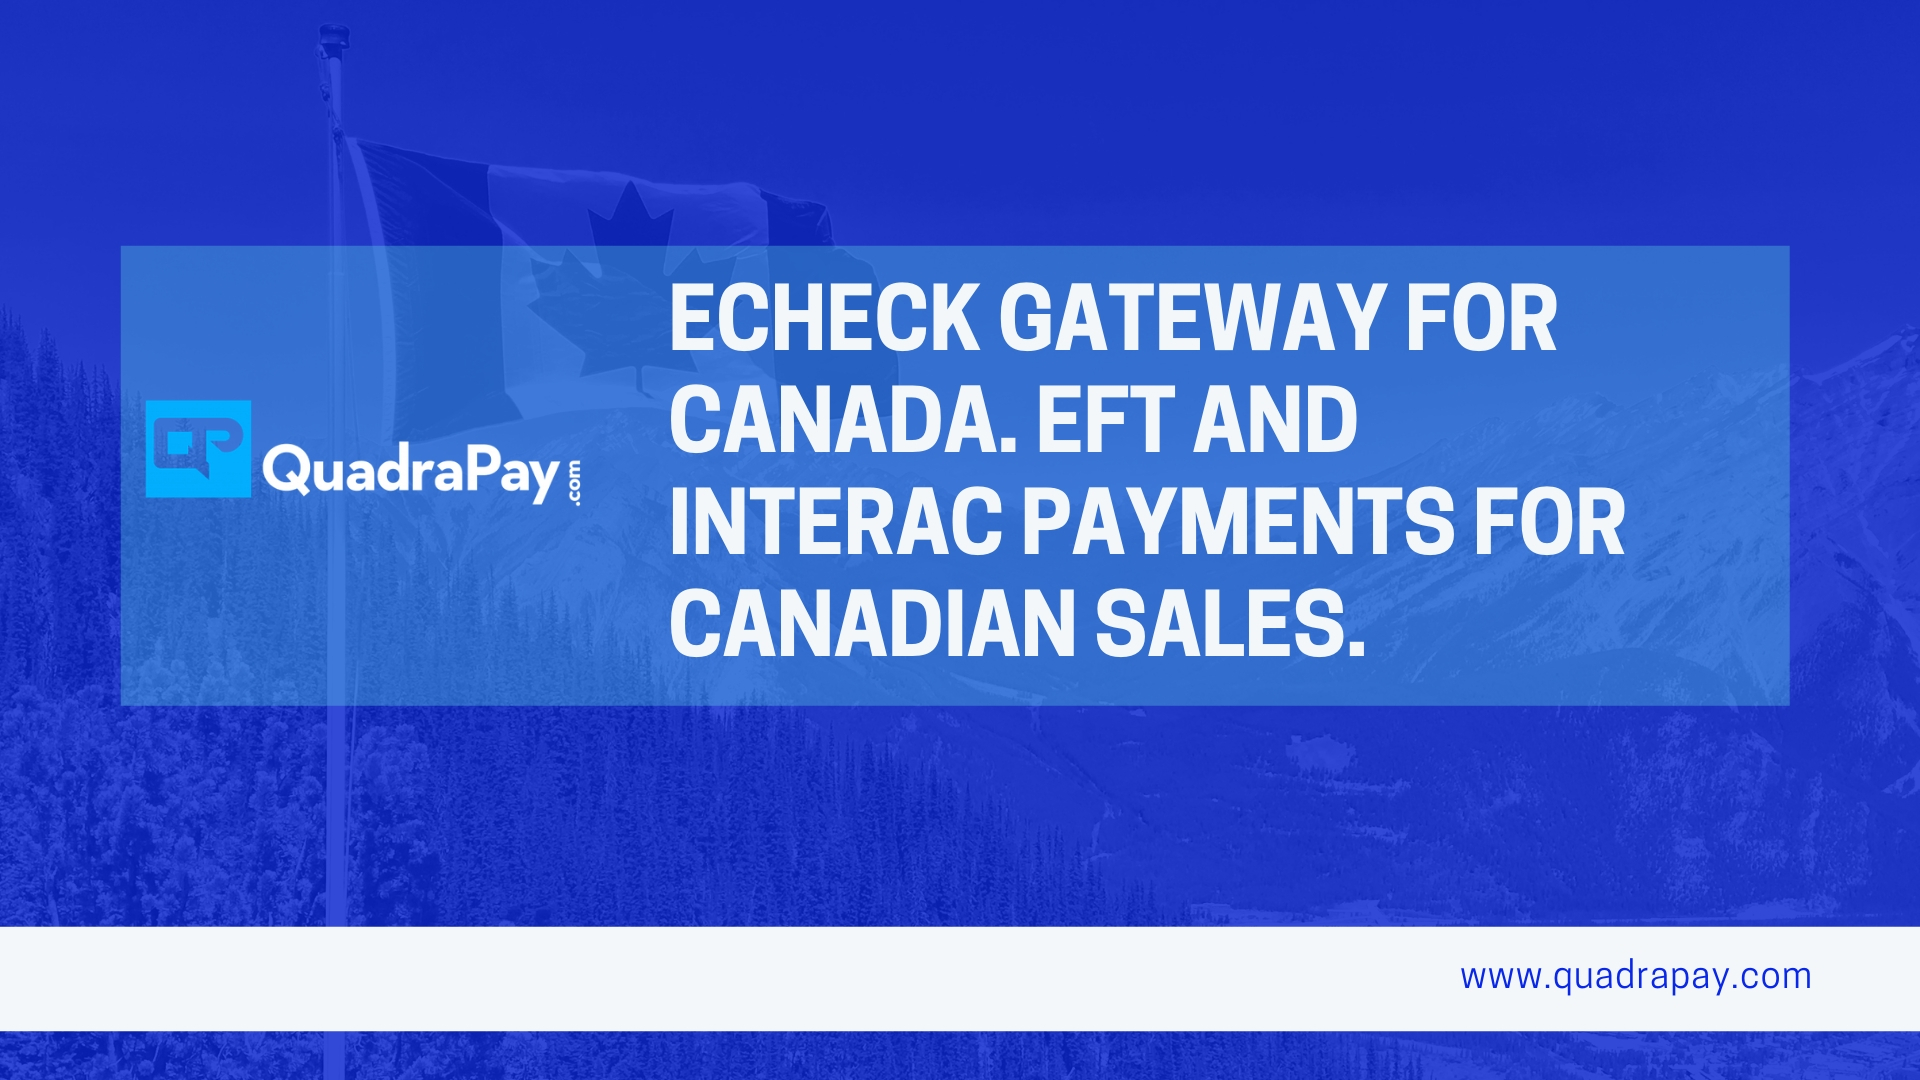 Echeck Gateway For Canada From Quadrapay